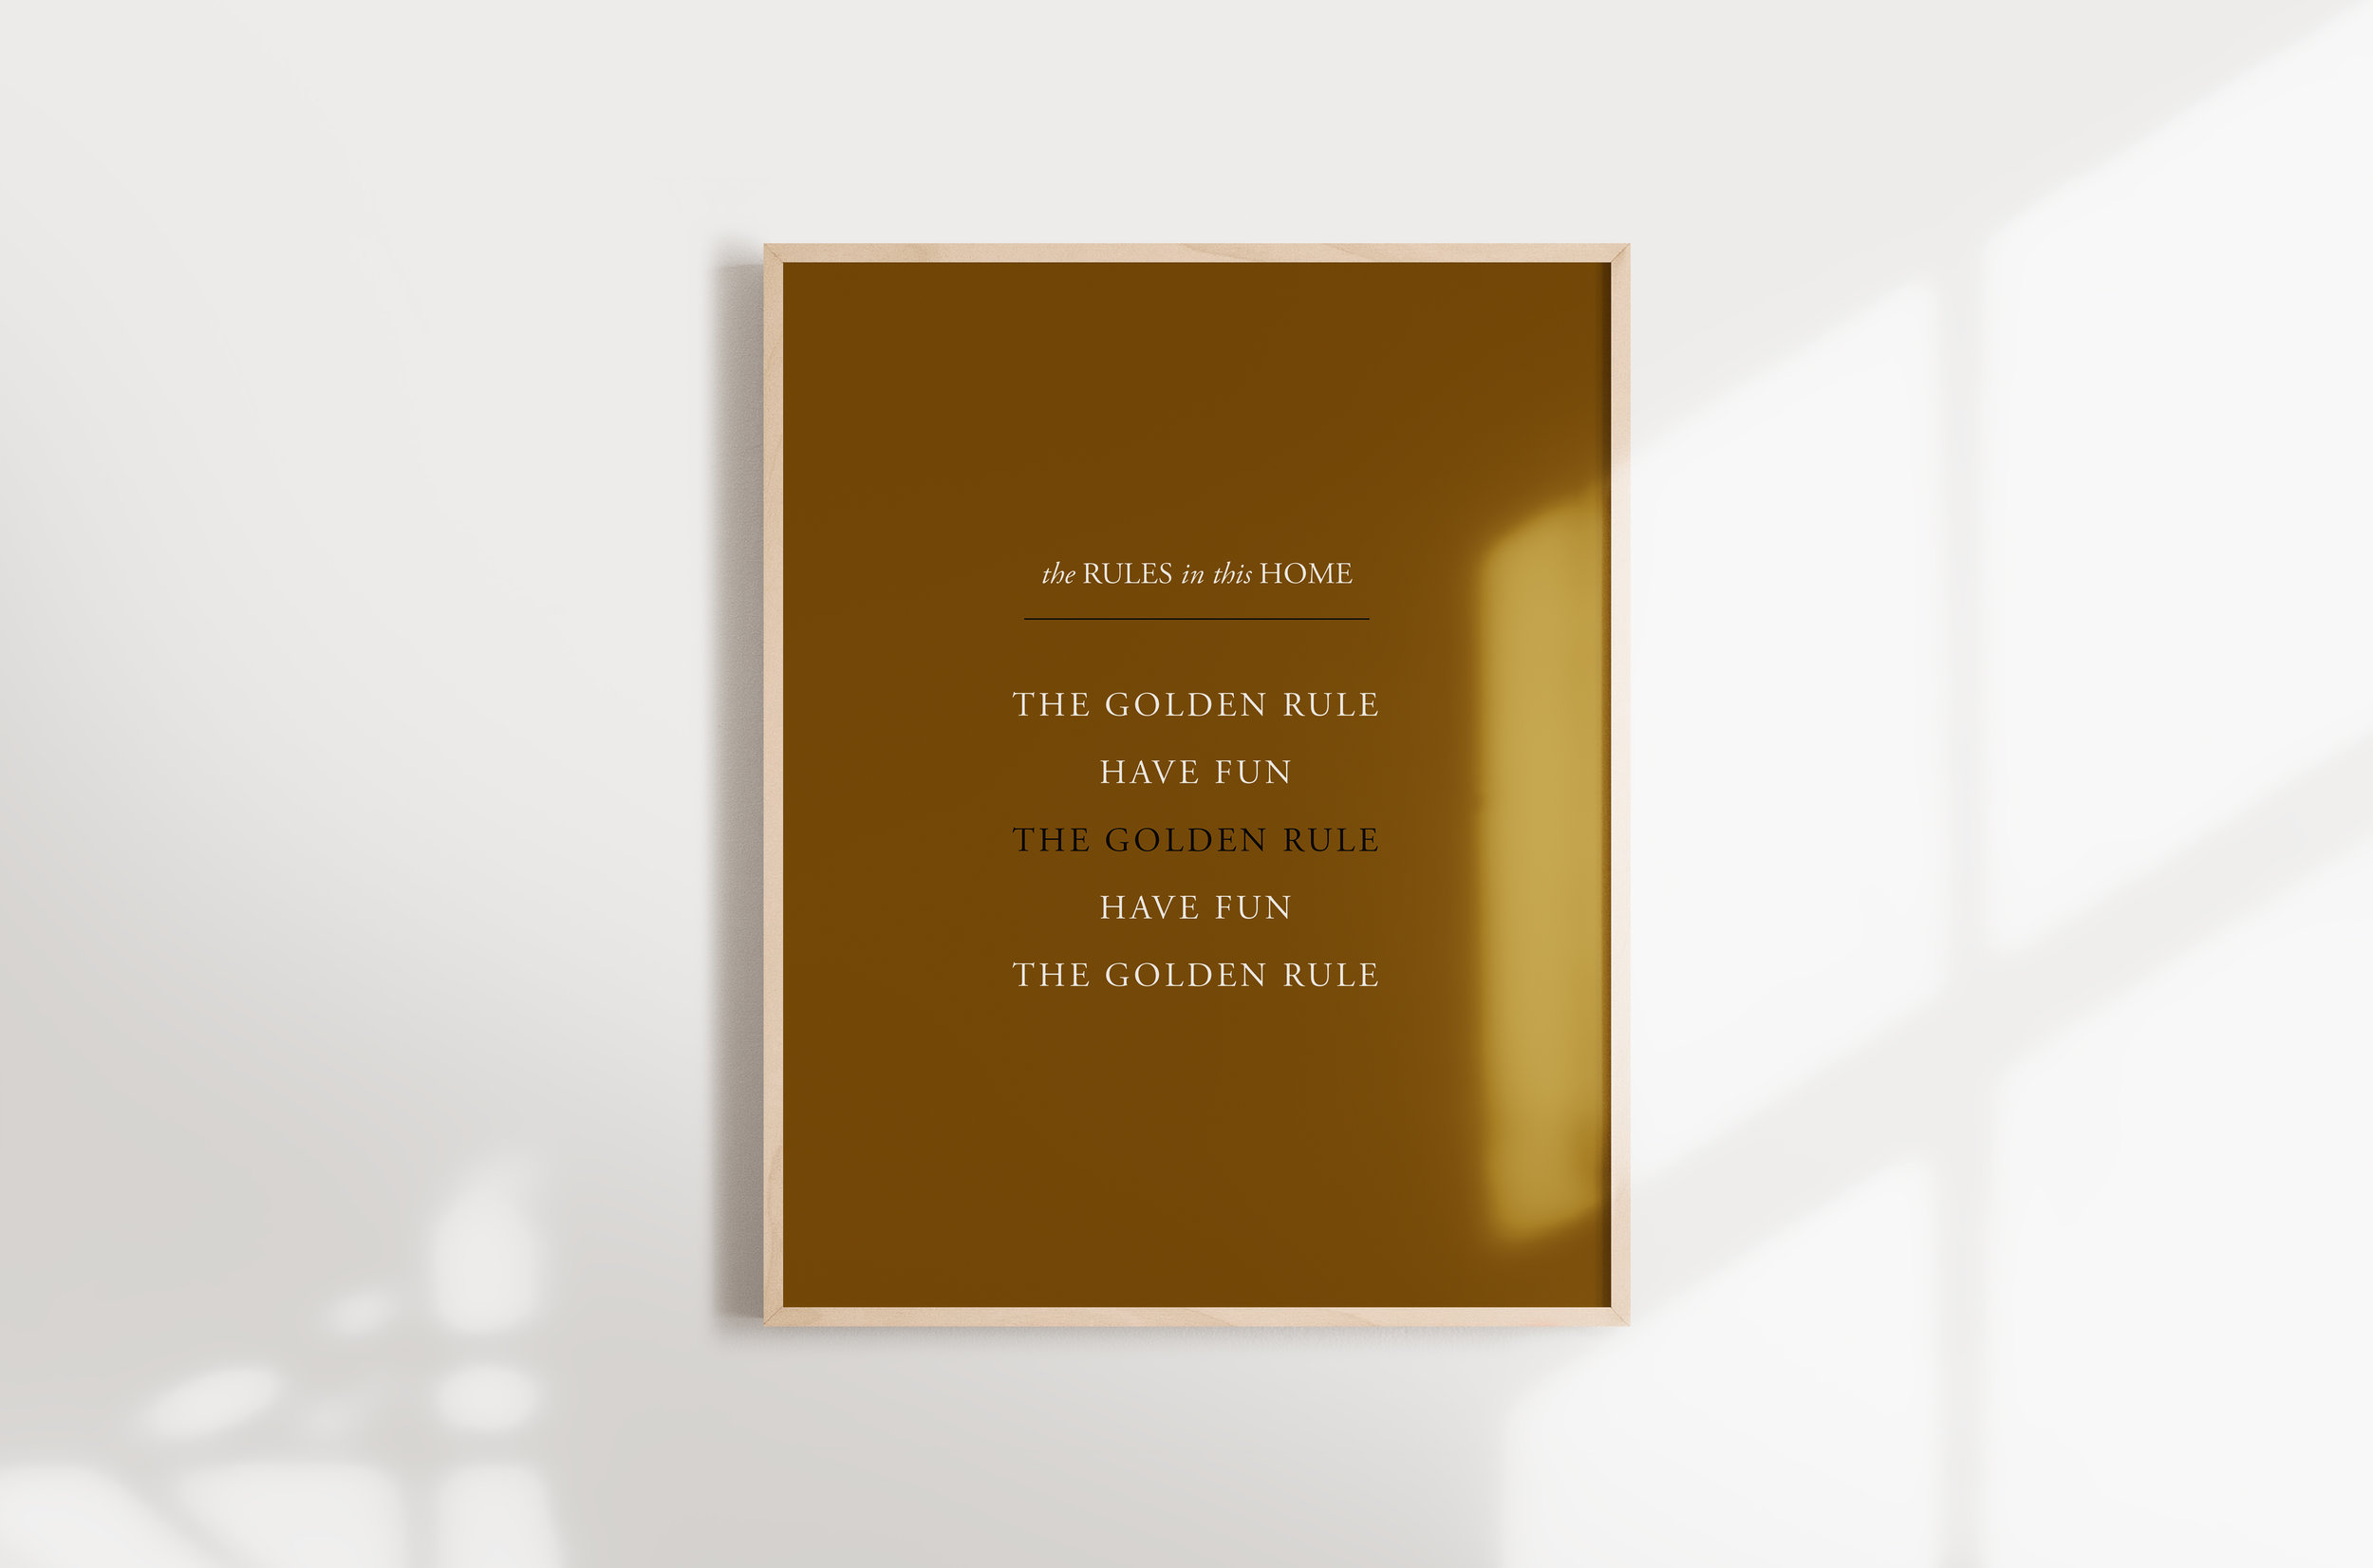 photograph relating to Golden Rule Printable named Store Printables THE CURATED CASA